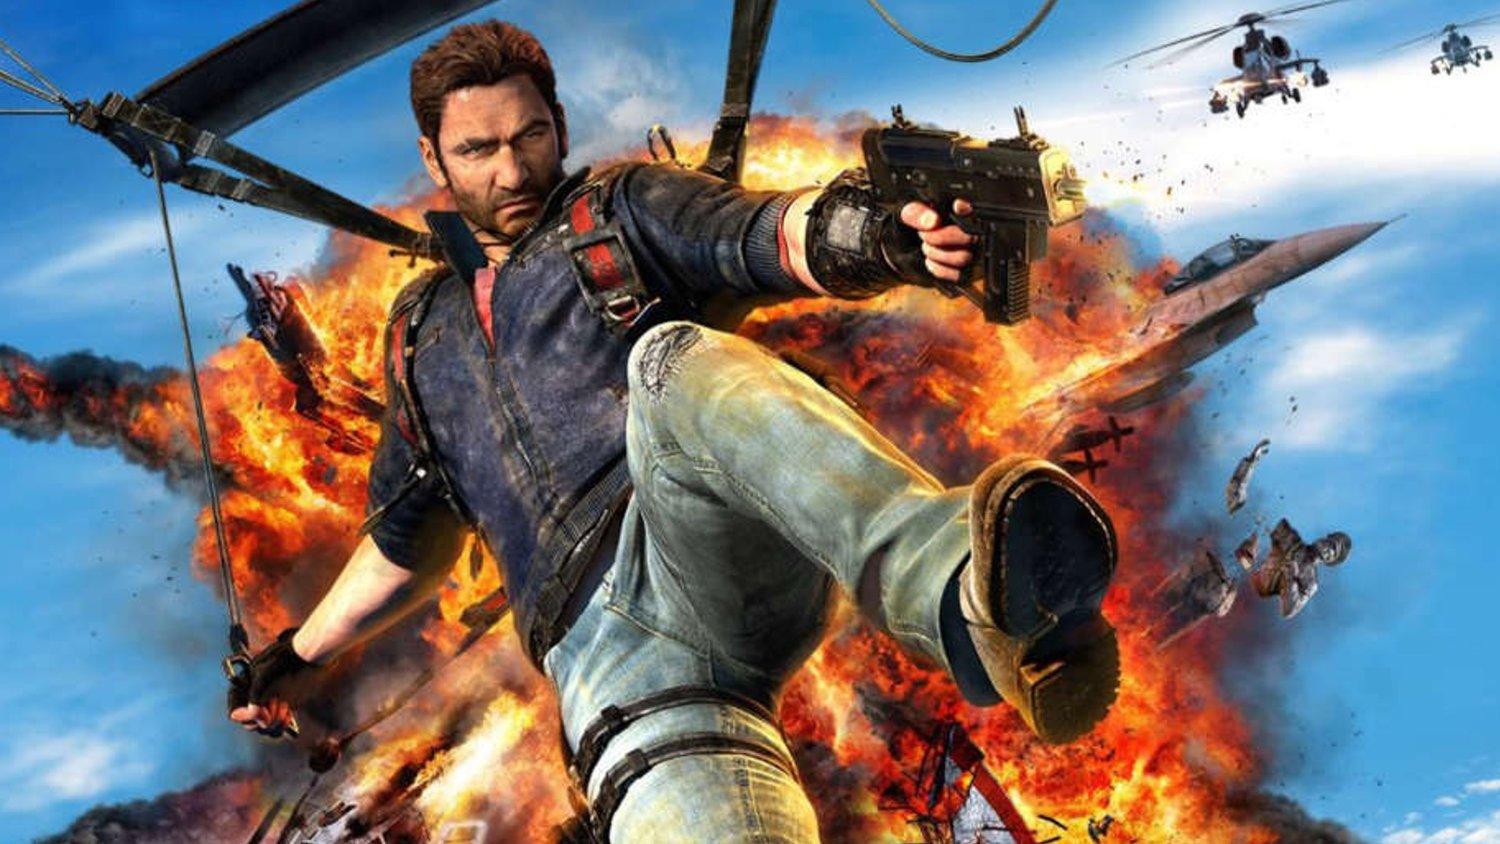 Jason Momoa Set to Star in Big Screen Adaptation of JUST CAUSE with Director Brad Peyton